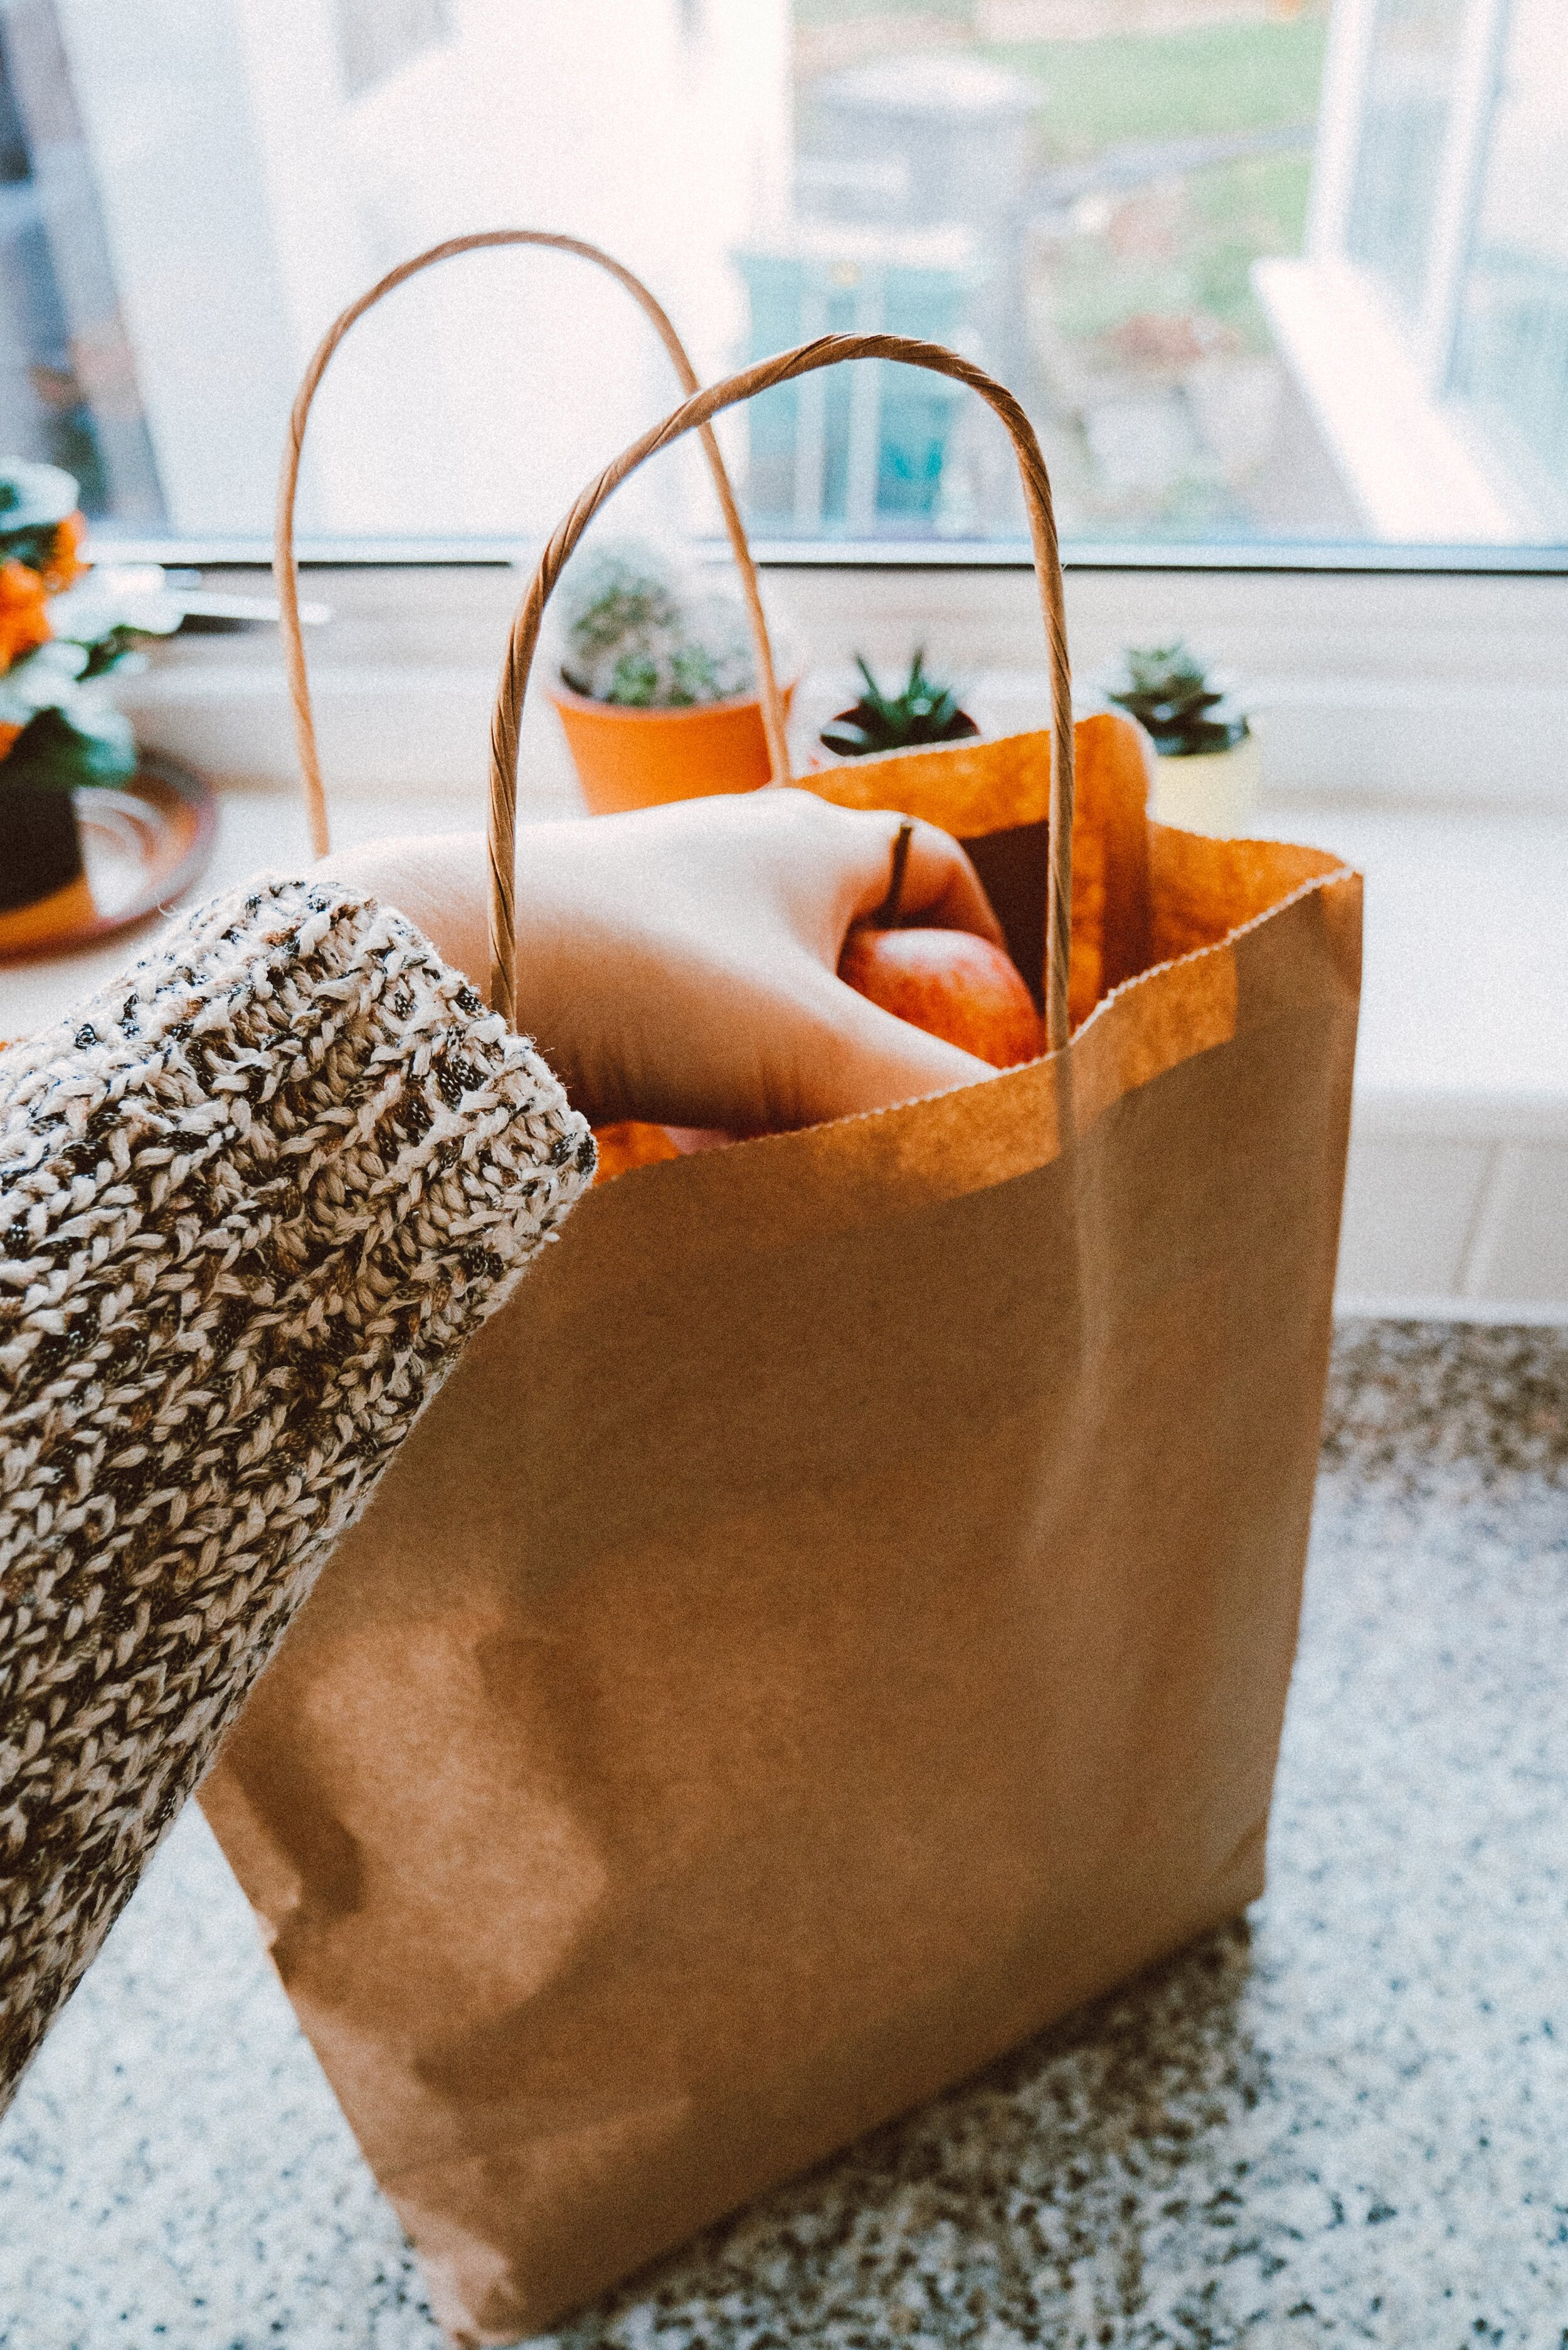 food-groceries-paper-bag-1992913.jpg